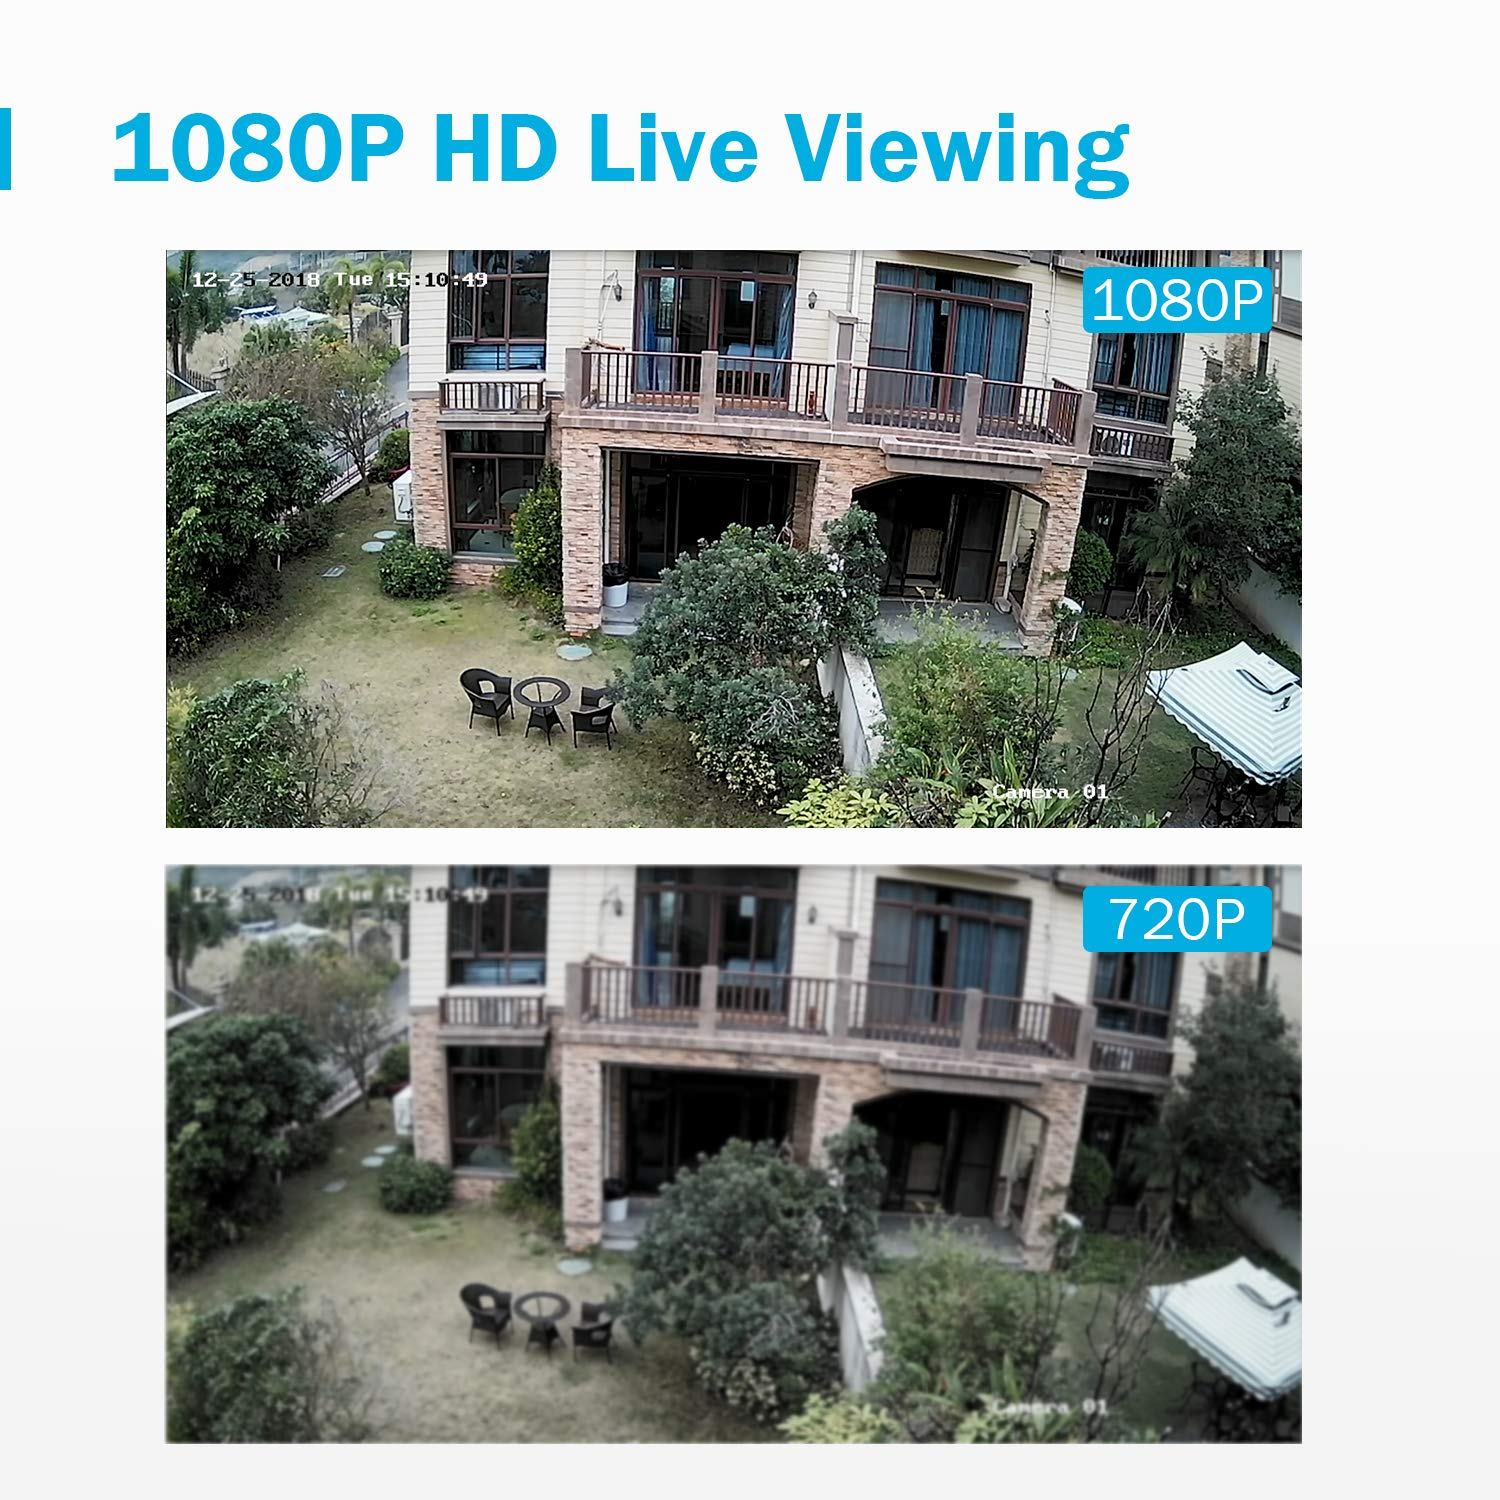 1080P Weatherproof CCTV Bullet Cameras Email Alert with Snapshots 2 ANNKE Security Camera Systems 4CH 1080P Lite H.264+ DVR with 1TB Hard Drive Pre-Installed and